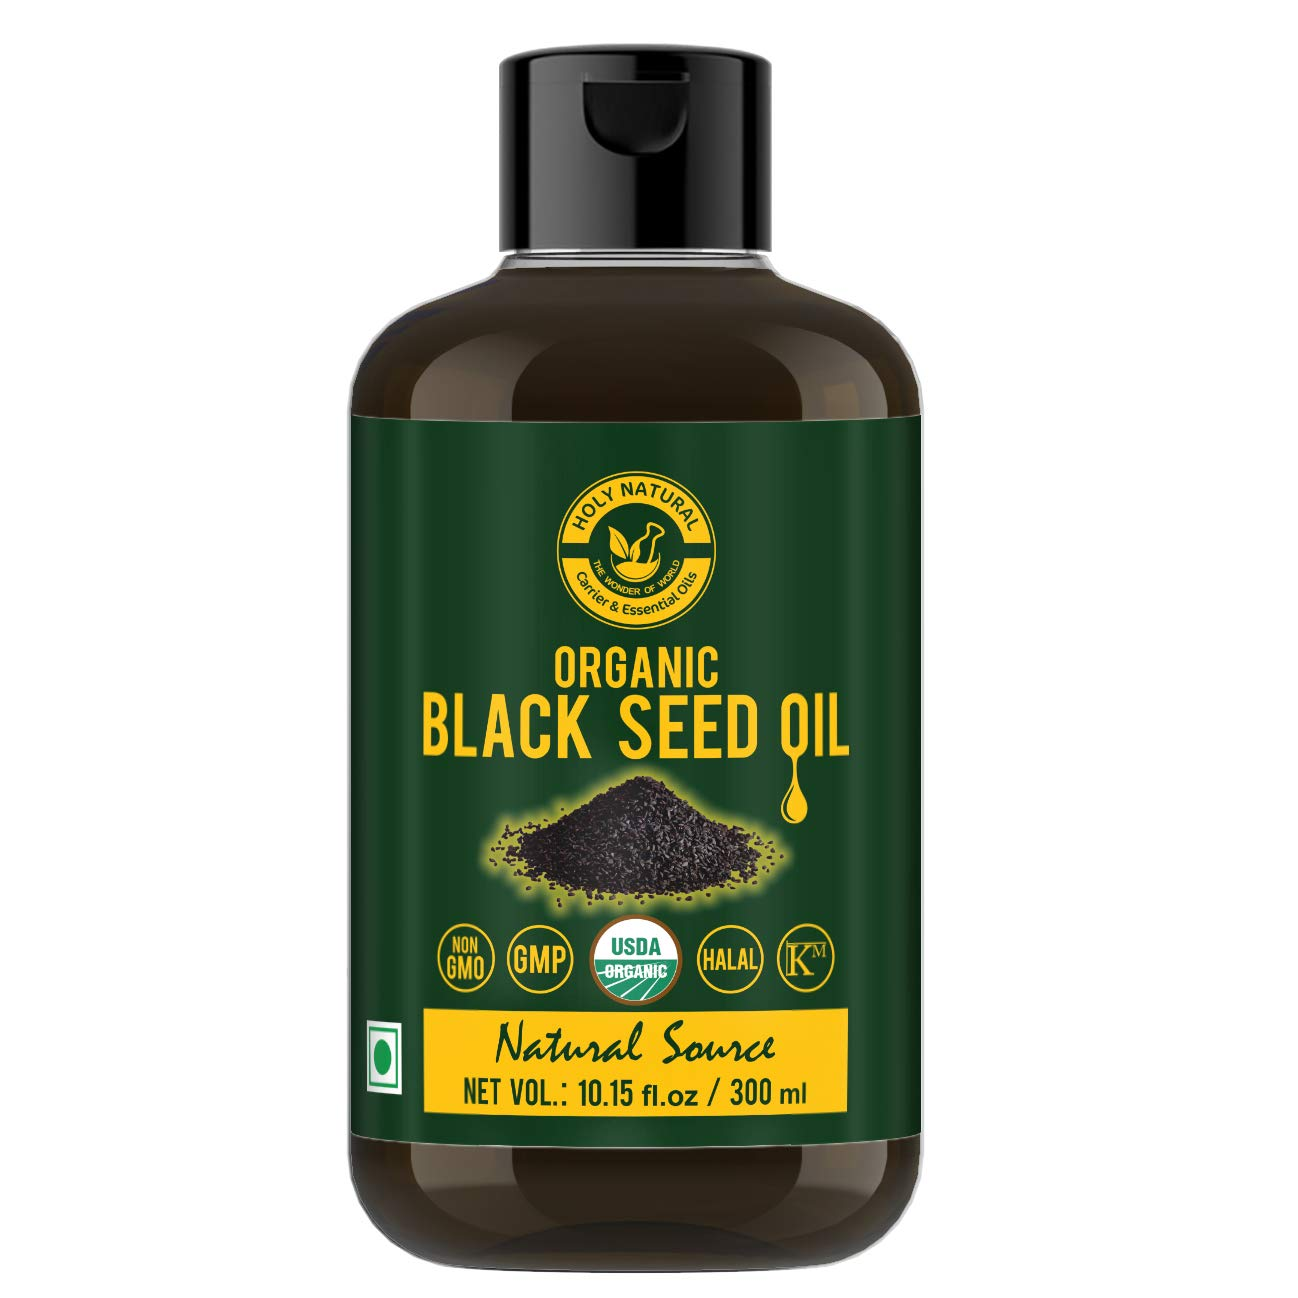 Holy Natural Organic Black Seed/Nigella Sativa/Kalonji Seeds Oil (300 ml) USDA Certified, Virgin Cold-Pressed Natural, No GMO, Untreated oil